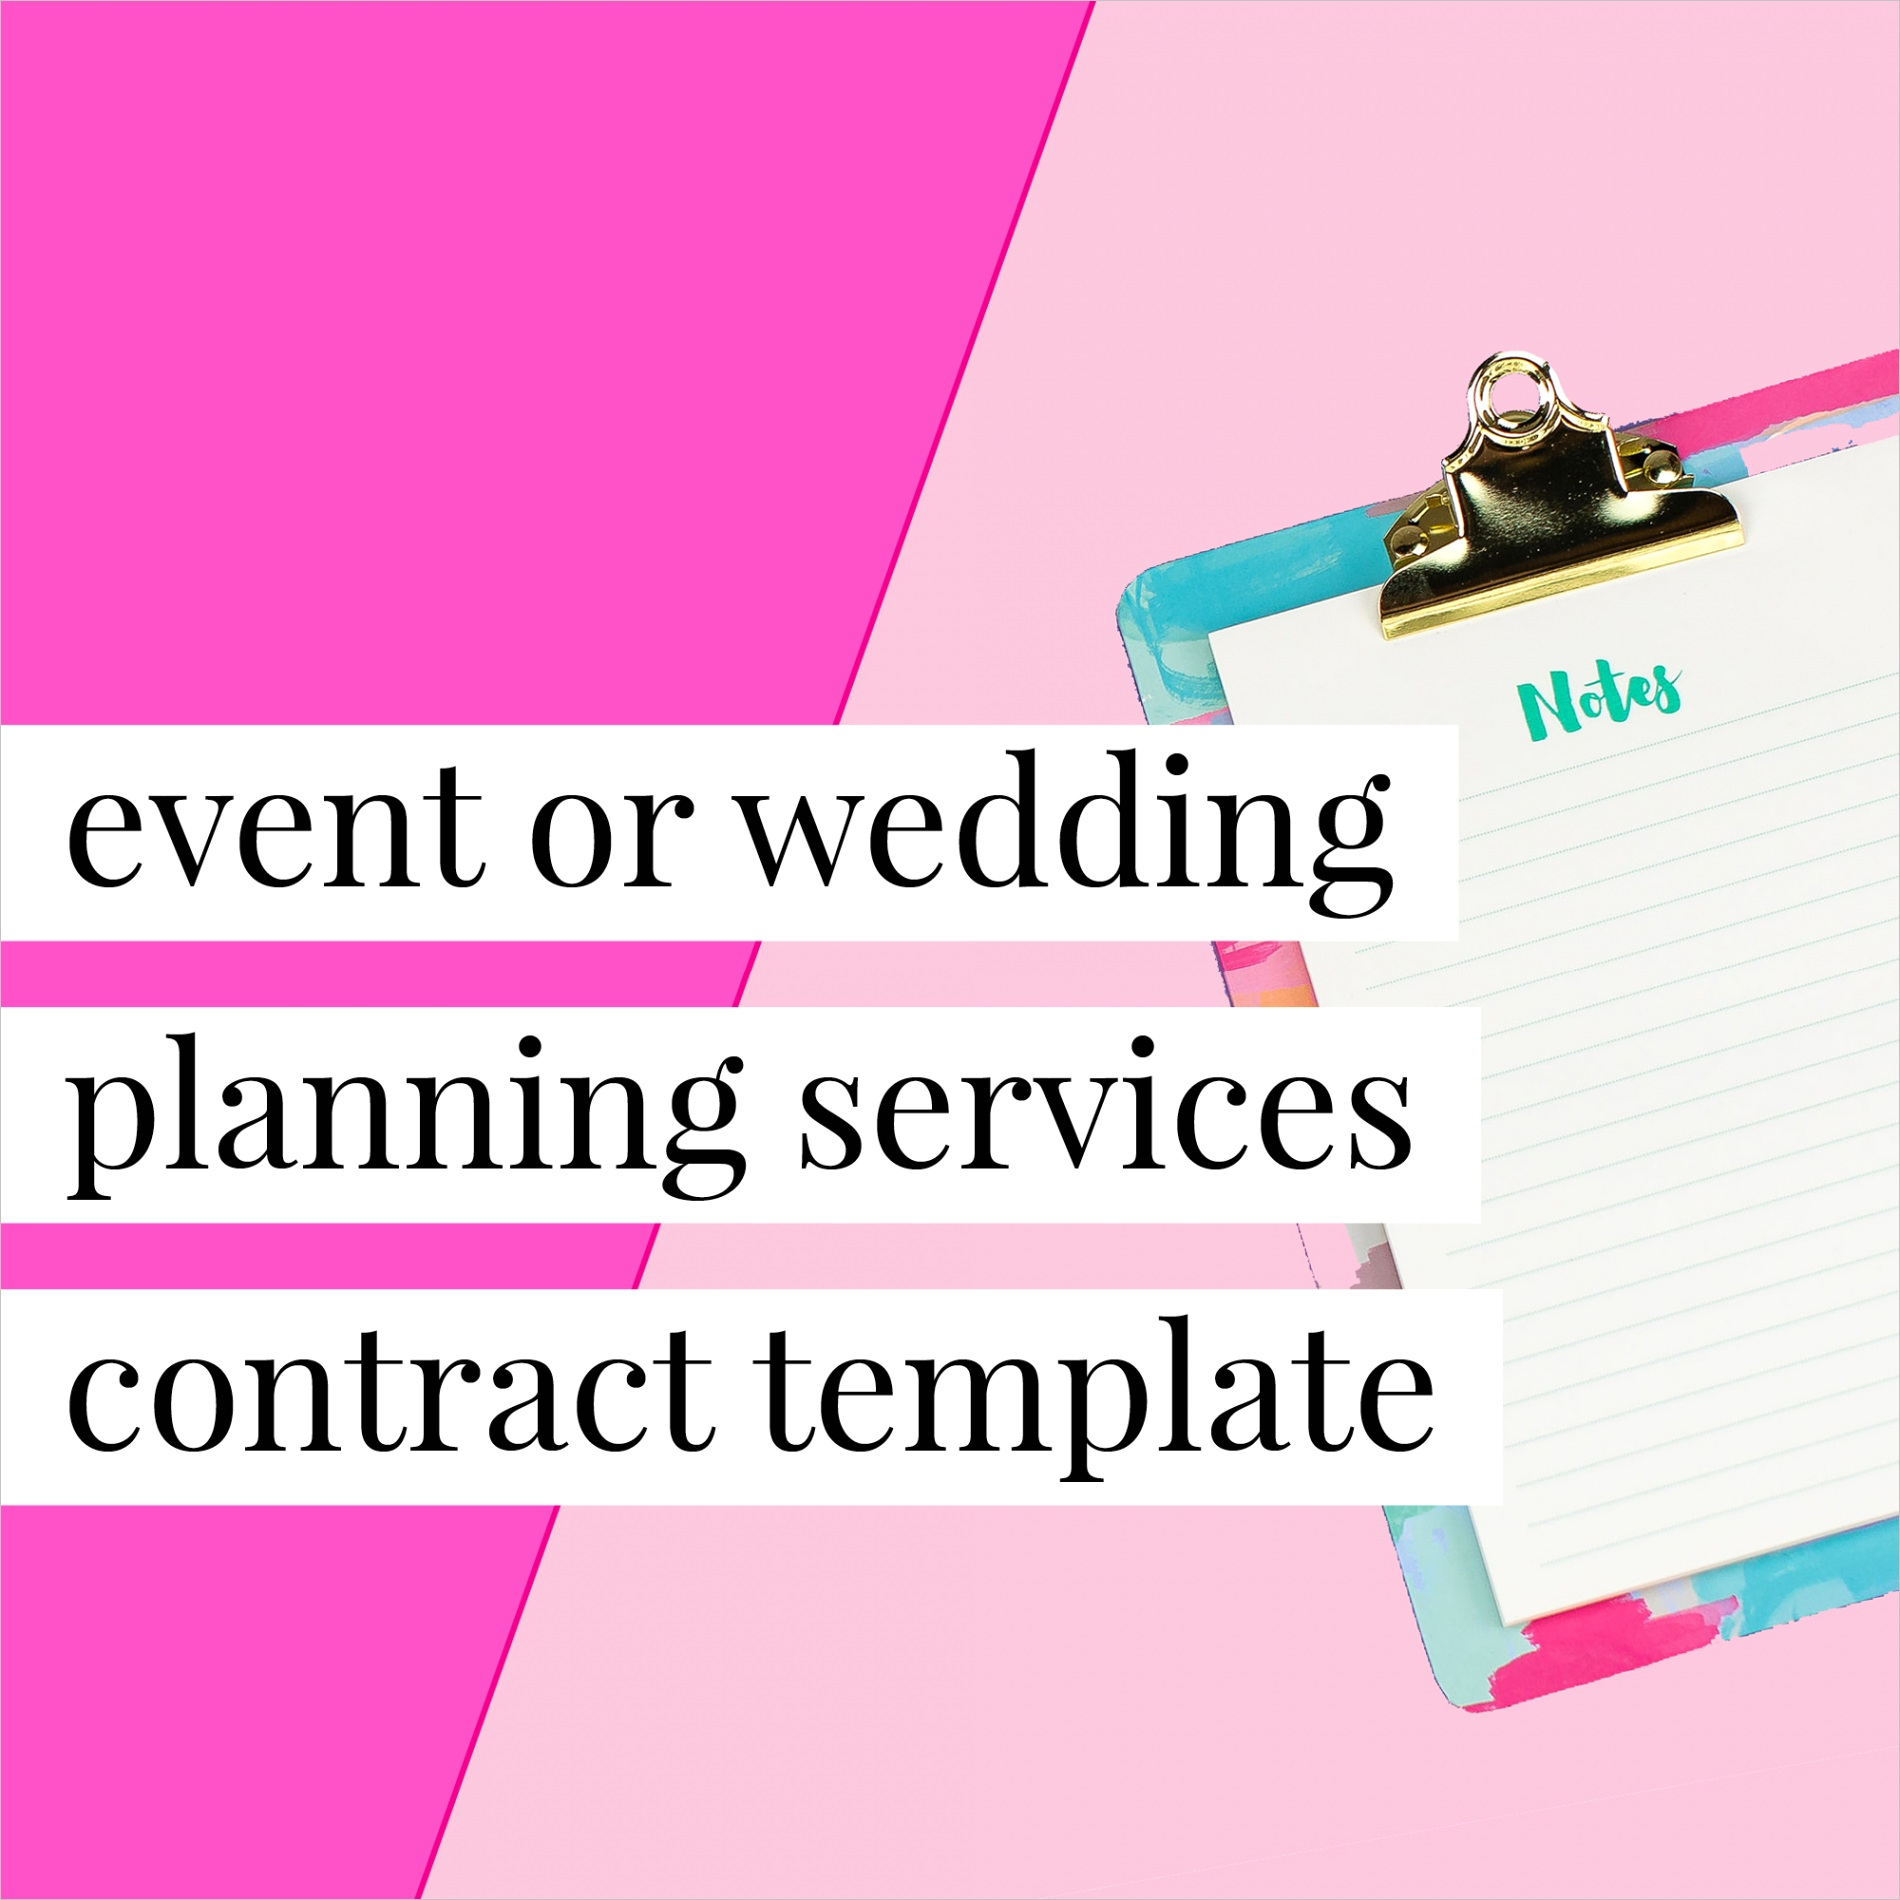 event or wedding planning services contract template